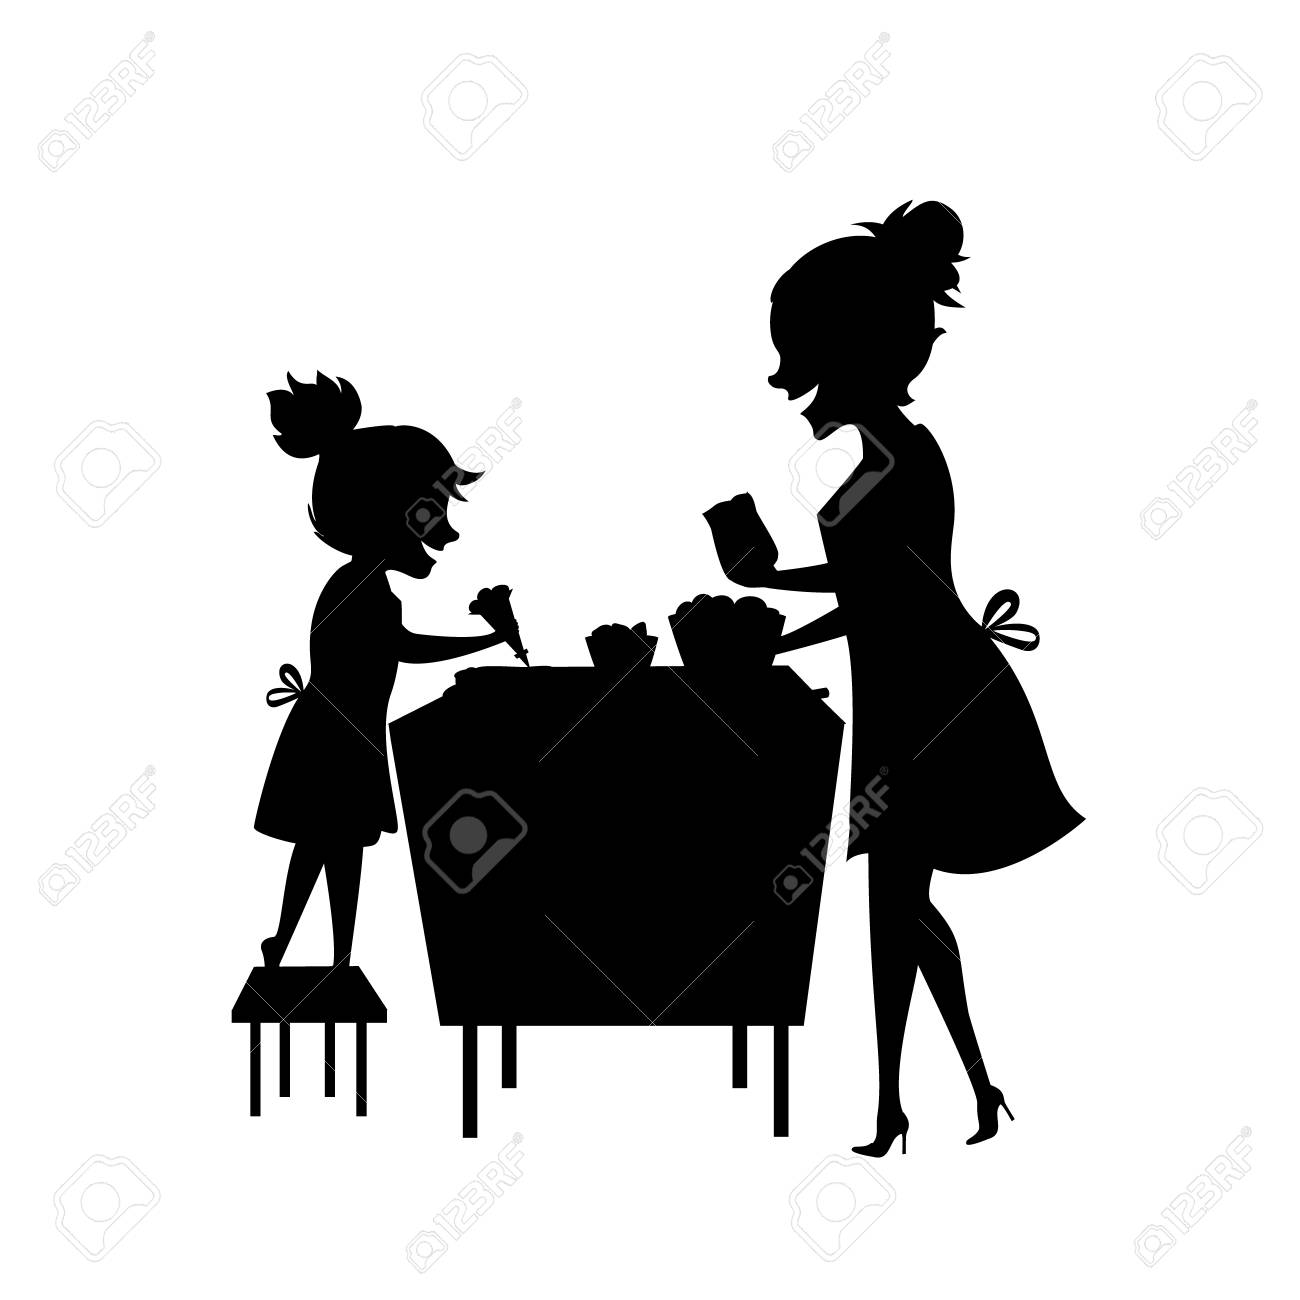 mother and daughter woman and child baking together silhouette rh 123rf com parent child silhouette vector child playing silhouette vector